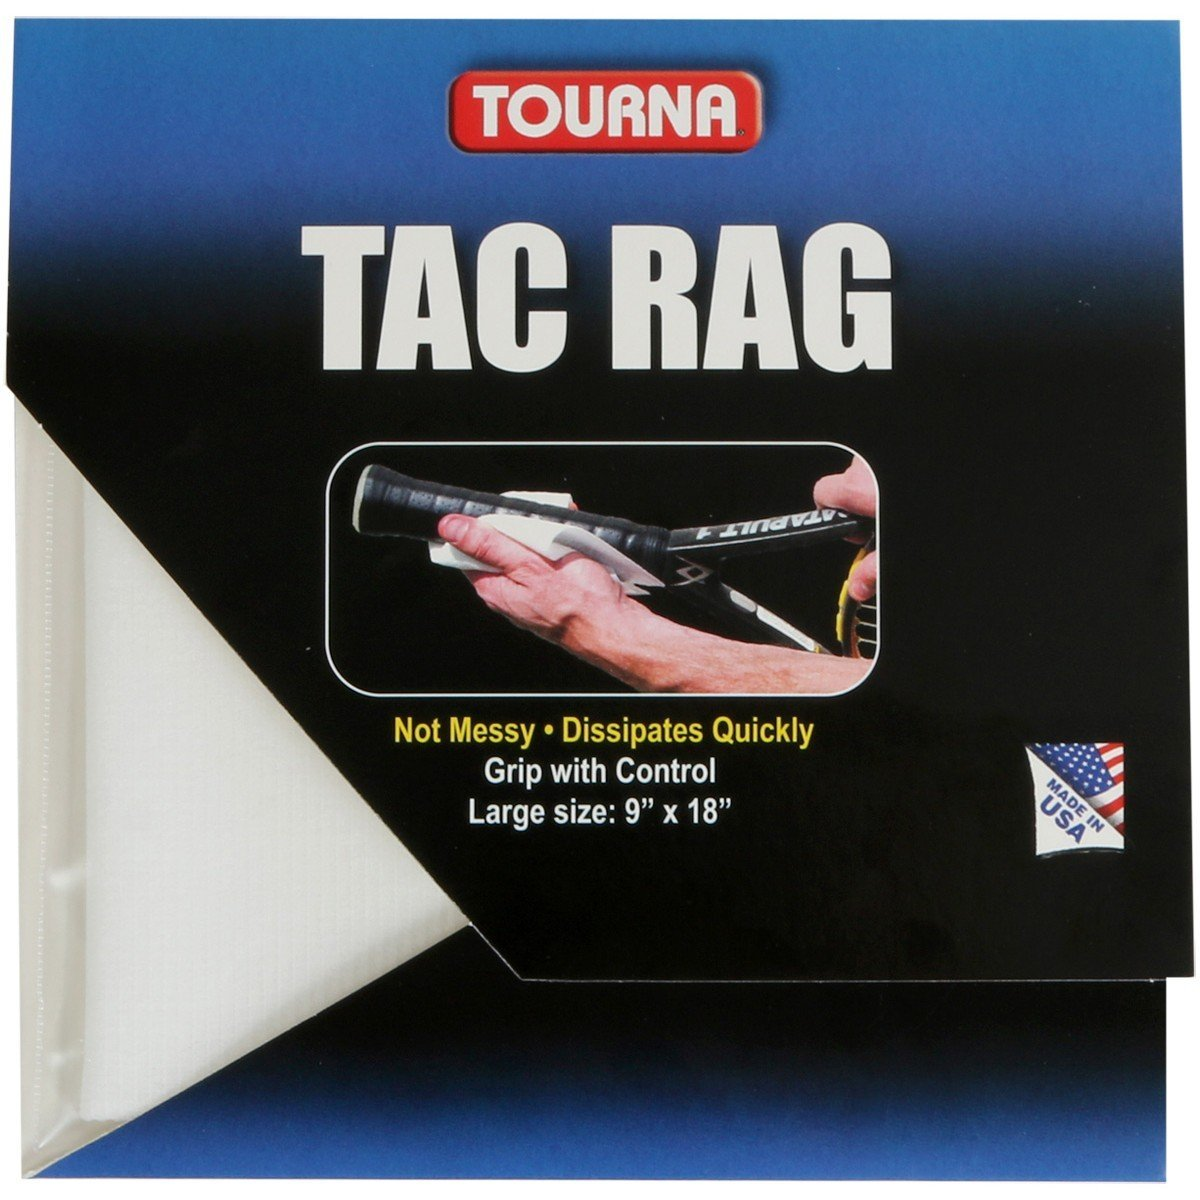 Tac Rag - Serviette grip & surgrip - Mytennishop